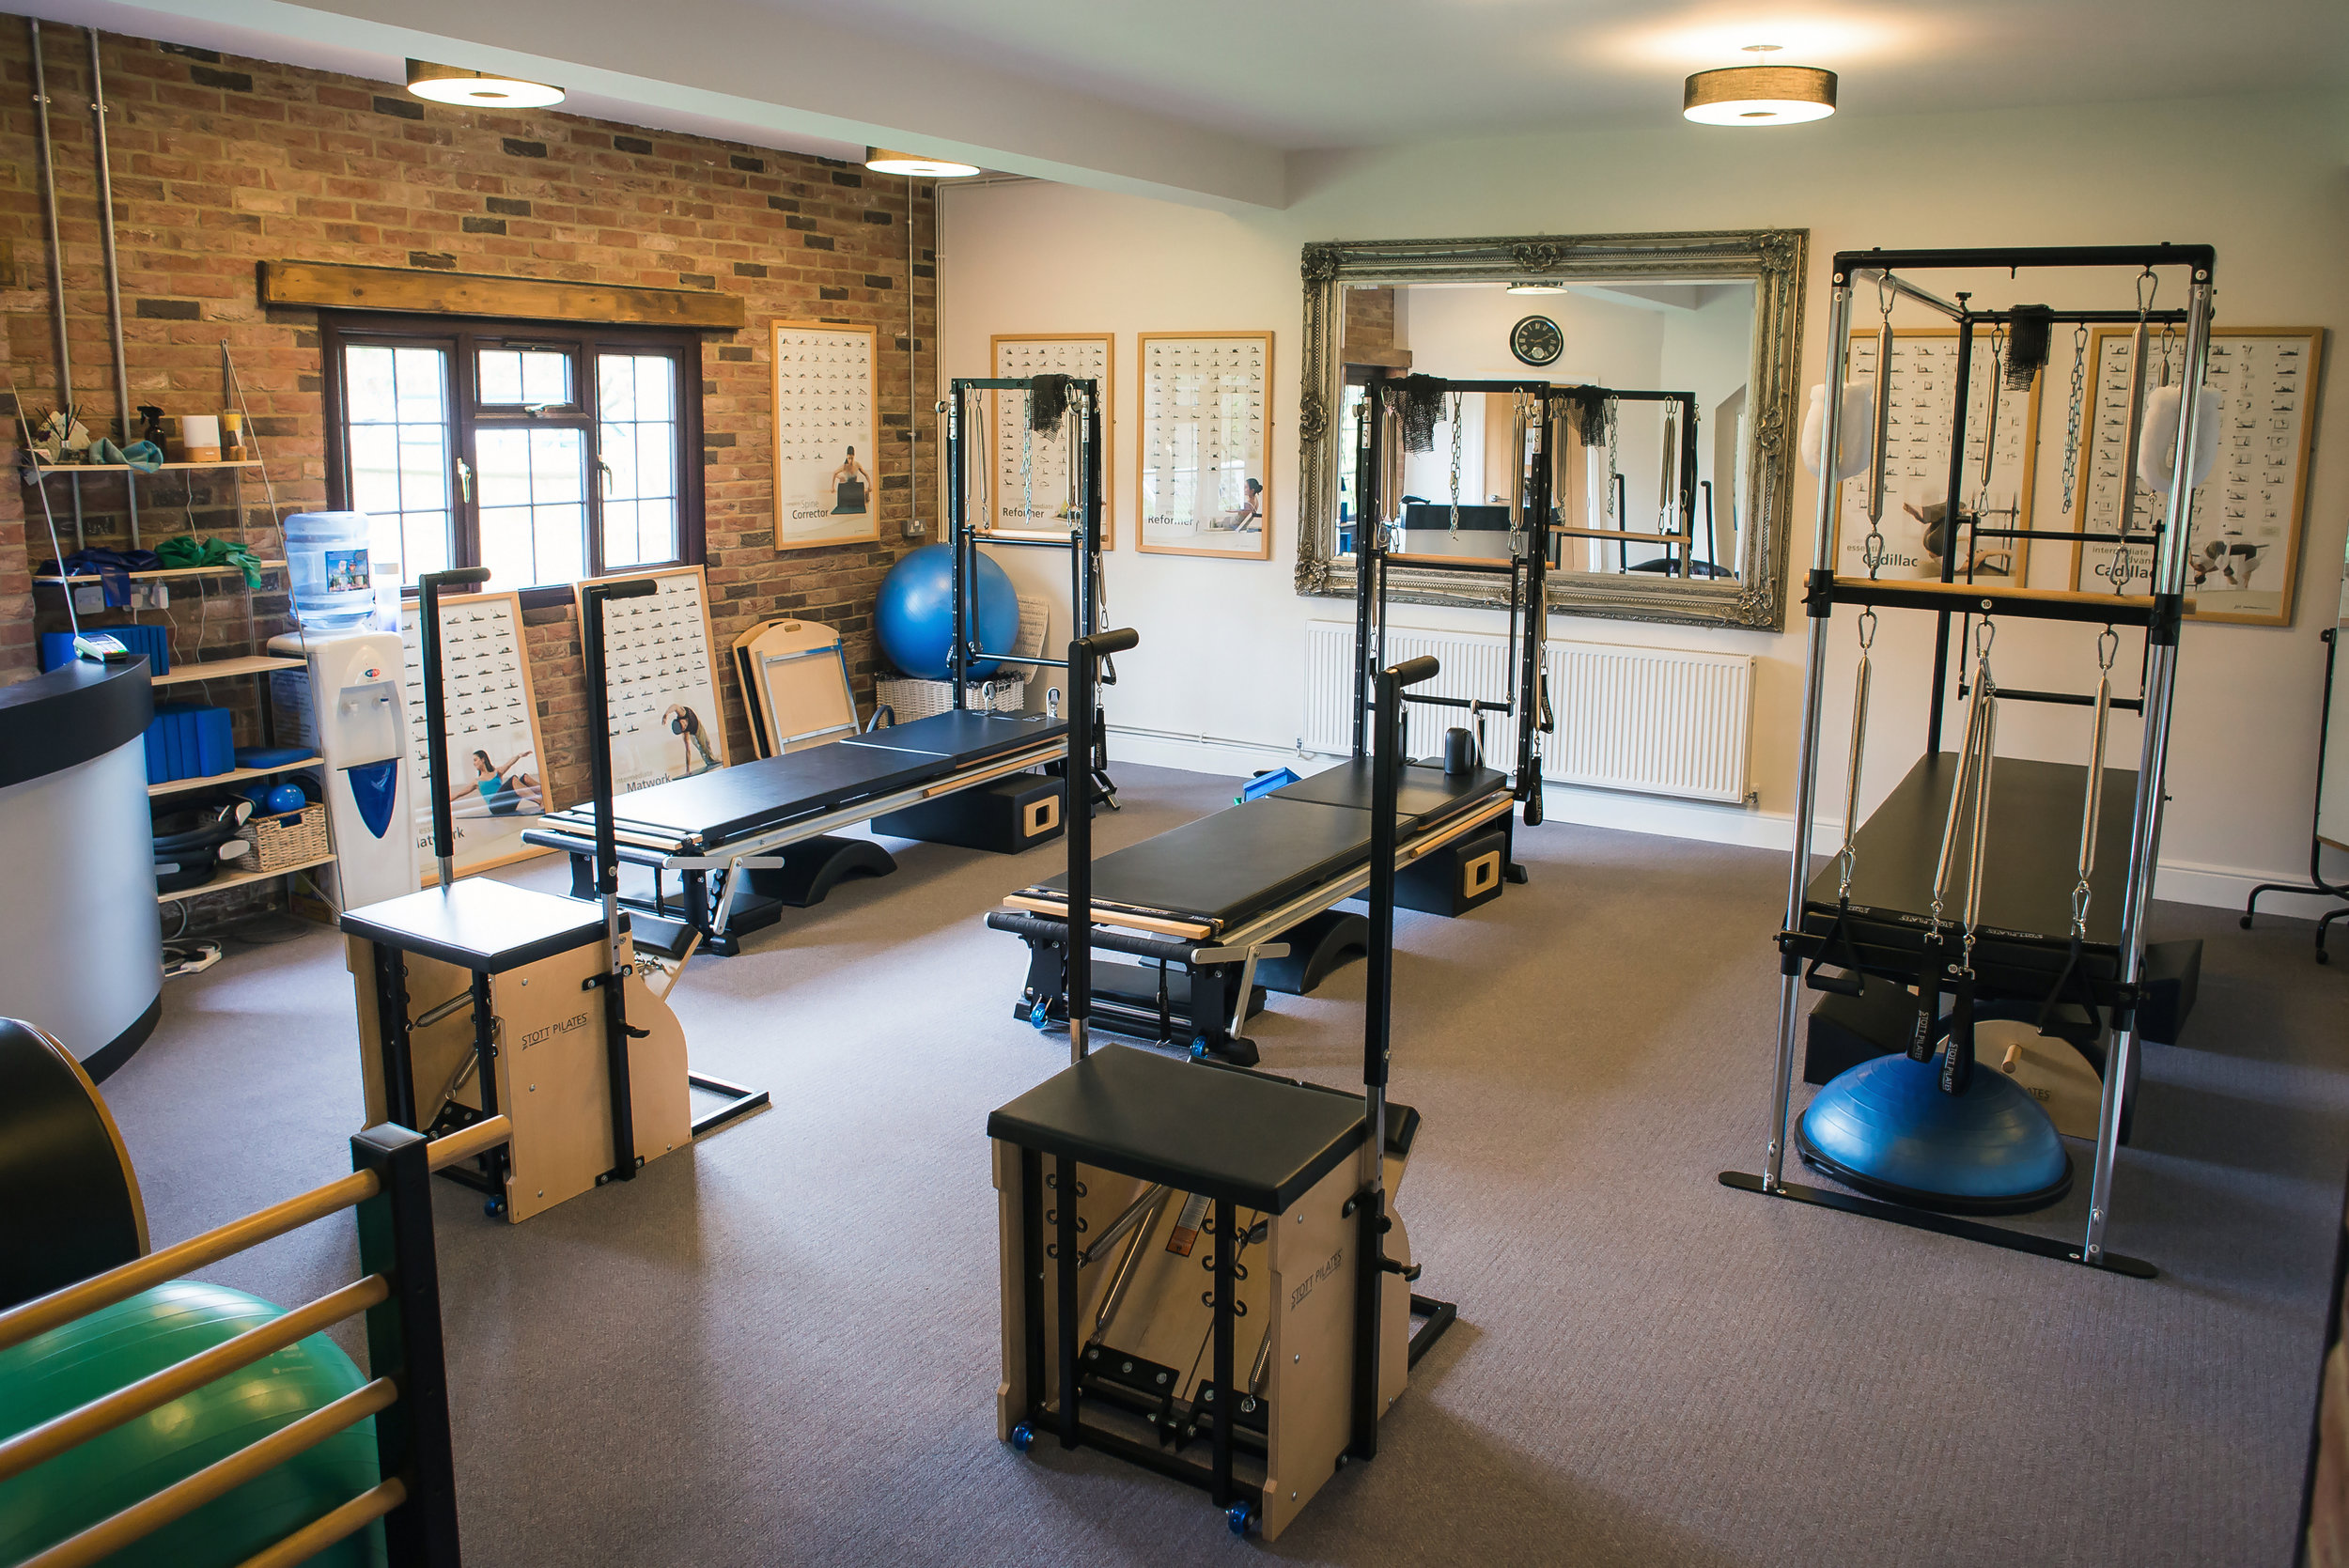 Pilates for every body, level and ability - Welcome to Prime Pilates, a fully equipped Pilates studio in Thundersley, Essex.The studio offers group matwork classes or private/semi private tuition, with STOTT PILATES certified instructors and equipment.If you're a beginner, have been practicing Pilates for some time or just curious as to what Pilates is all about, please don't hesitate to get in touch, we'd be happy to help and answer any questions you may have.